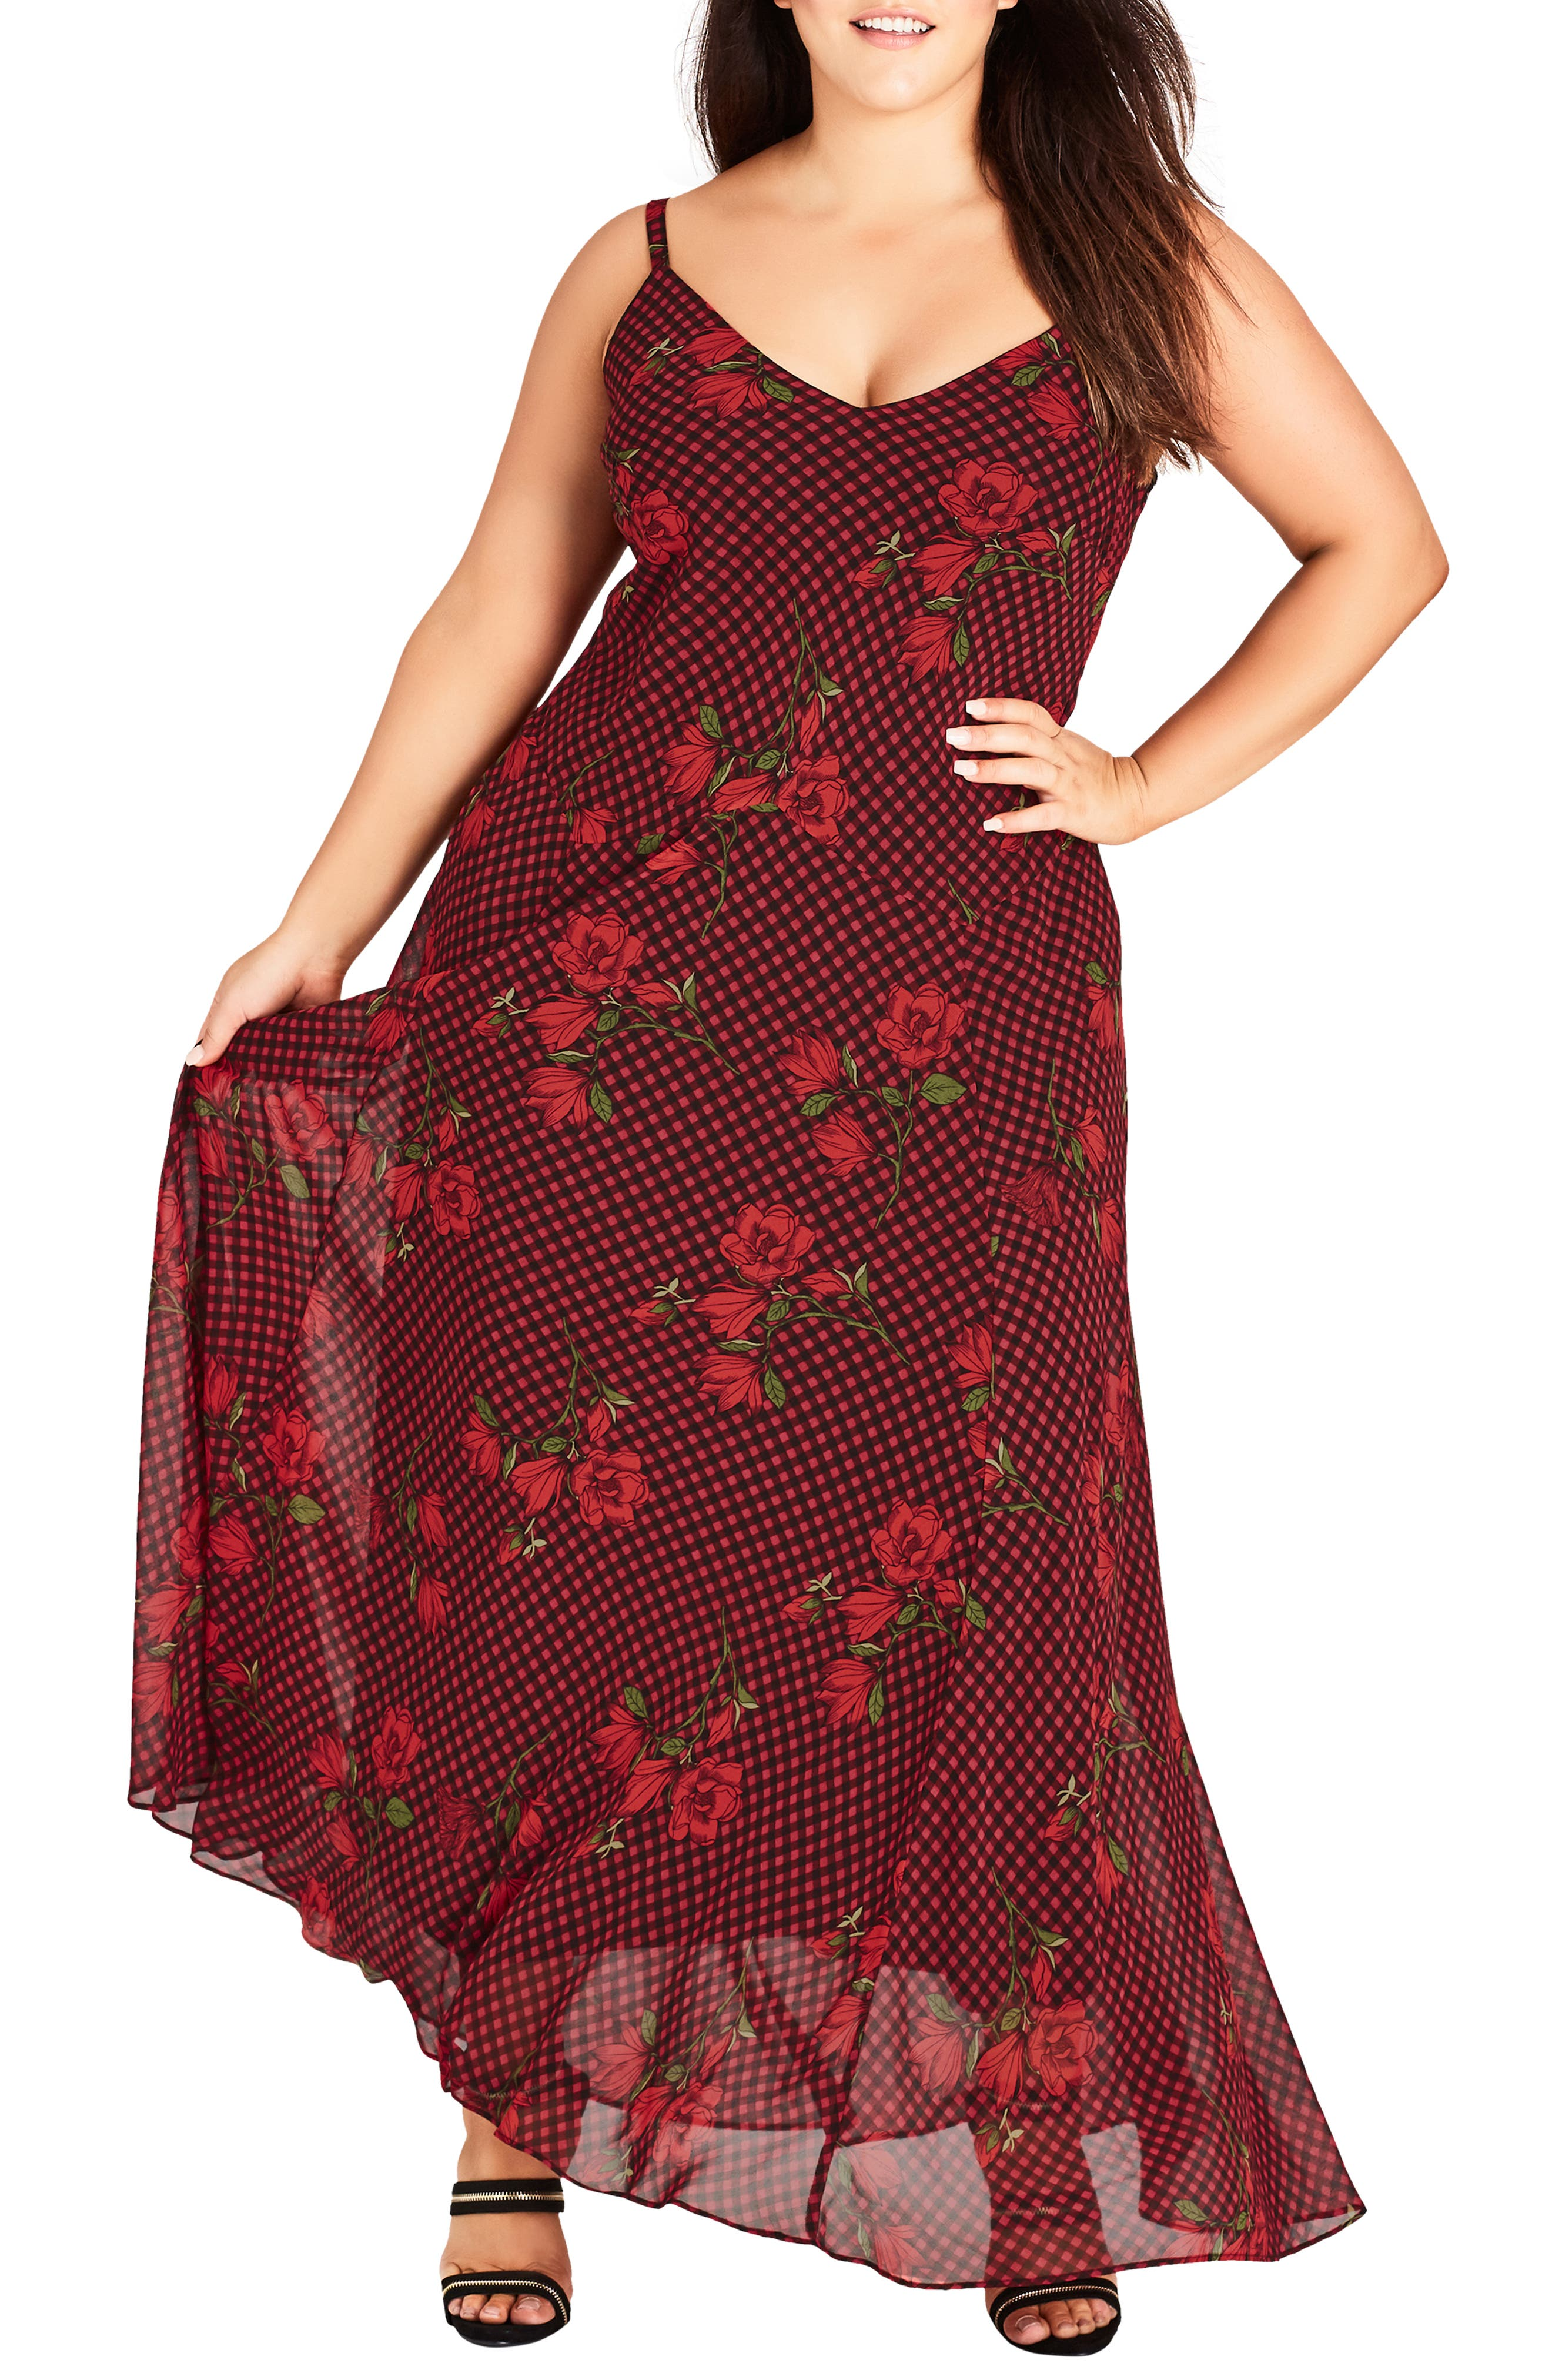 CITY CHIC Gingham Poppy Maxi Dress, Main, color, 605